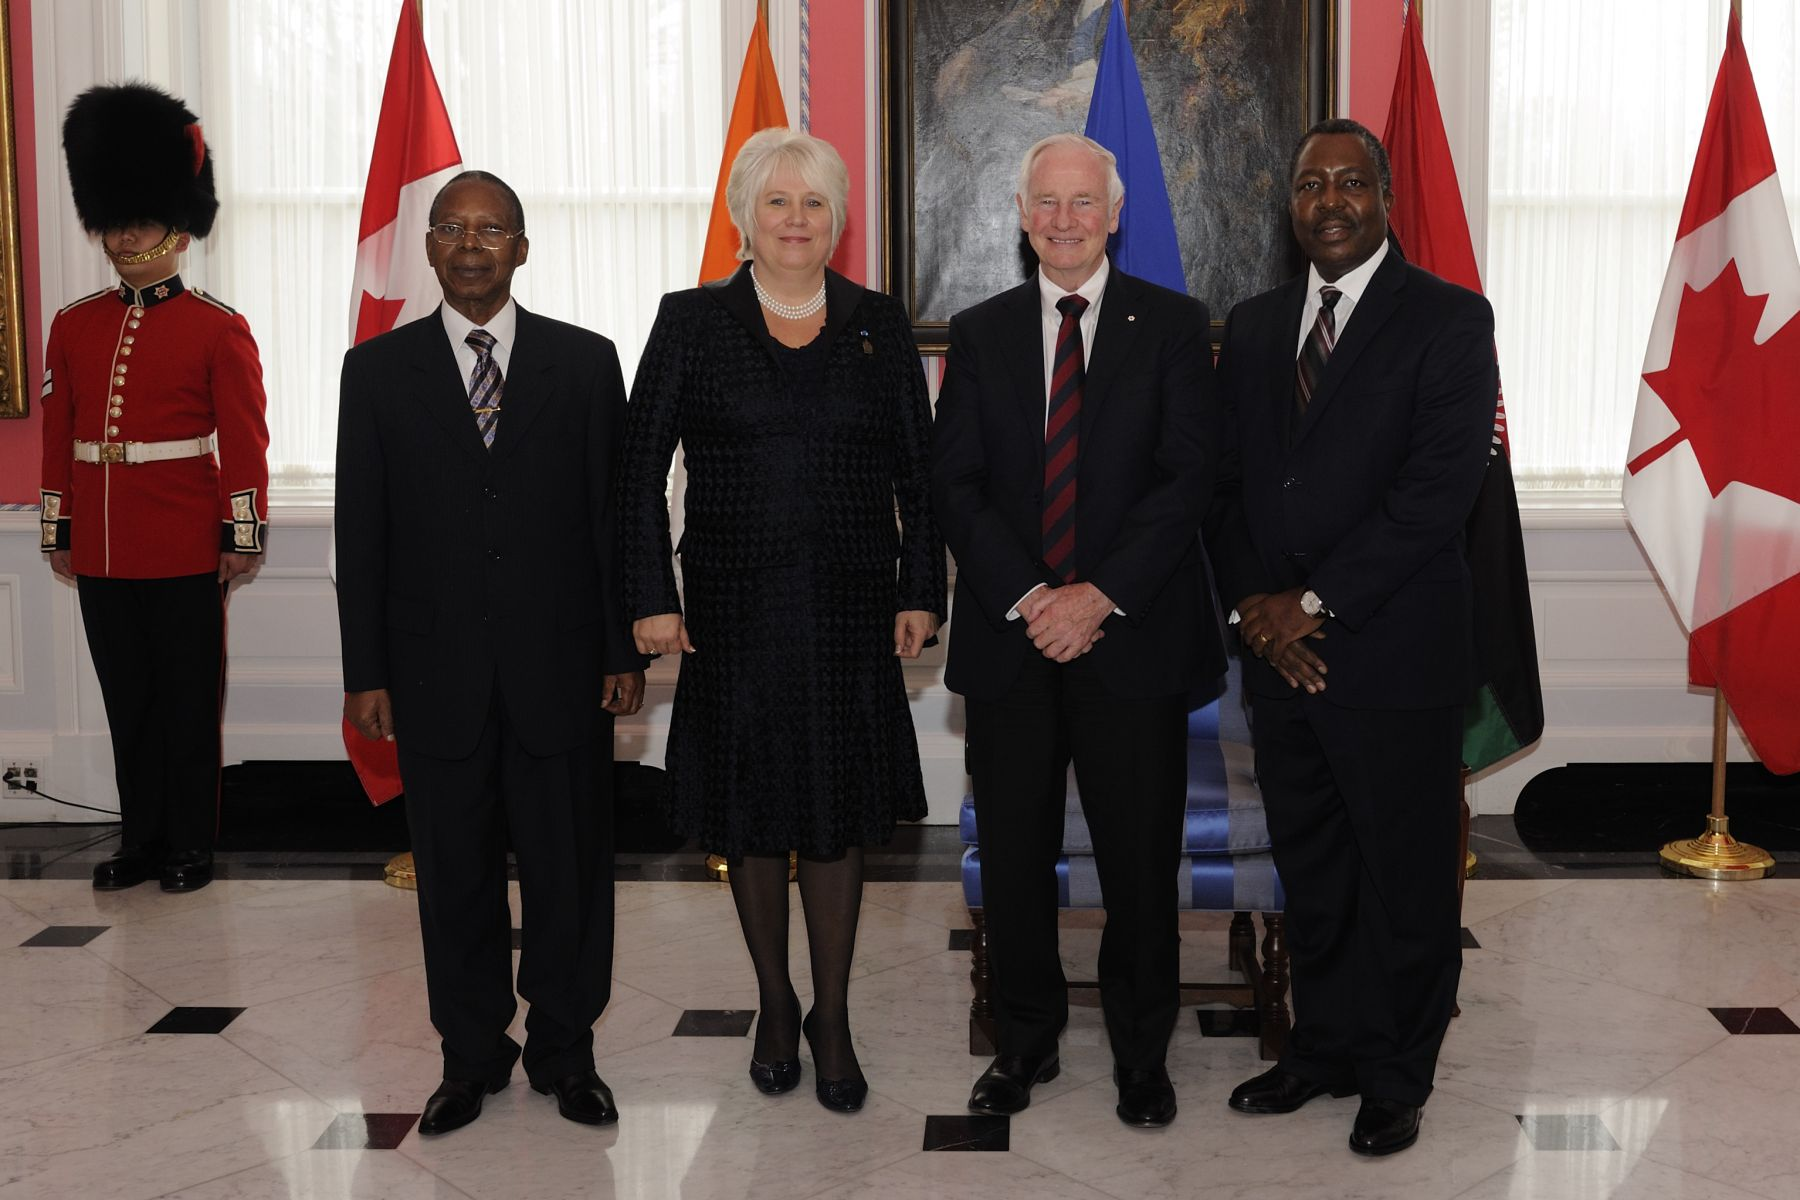 """One of my great privileges as governor general is to welcome foreign heads of mission to Canada,"" said His Excellency. ""It is always an honour to take part in these occasions, because diplomacy plays a key role in building the smarter, more caring world to which we aspire."""